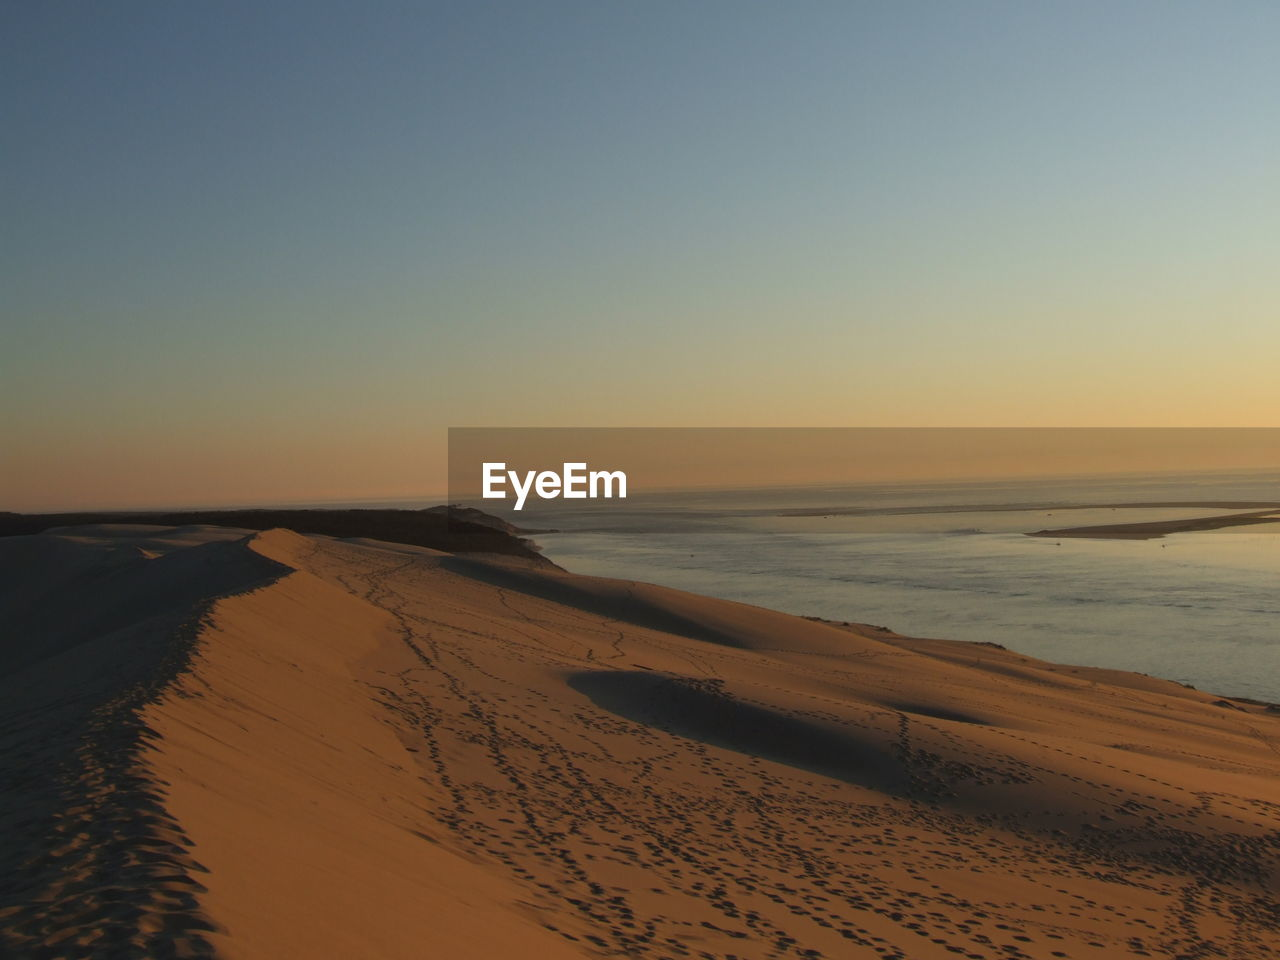 beach, sea, sand, scenics, sunset, beauty in nature, nature, tranquil scene, tranquility, horizon over water, water, clear sky, no people, sky, outdoors, sunlight, vacations, sand dune, wave, day